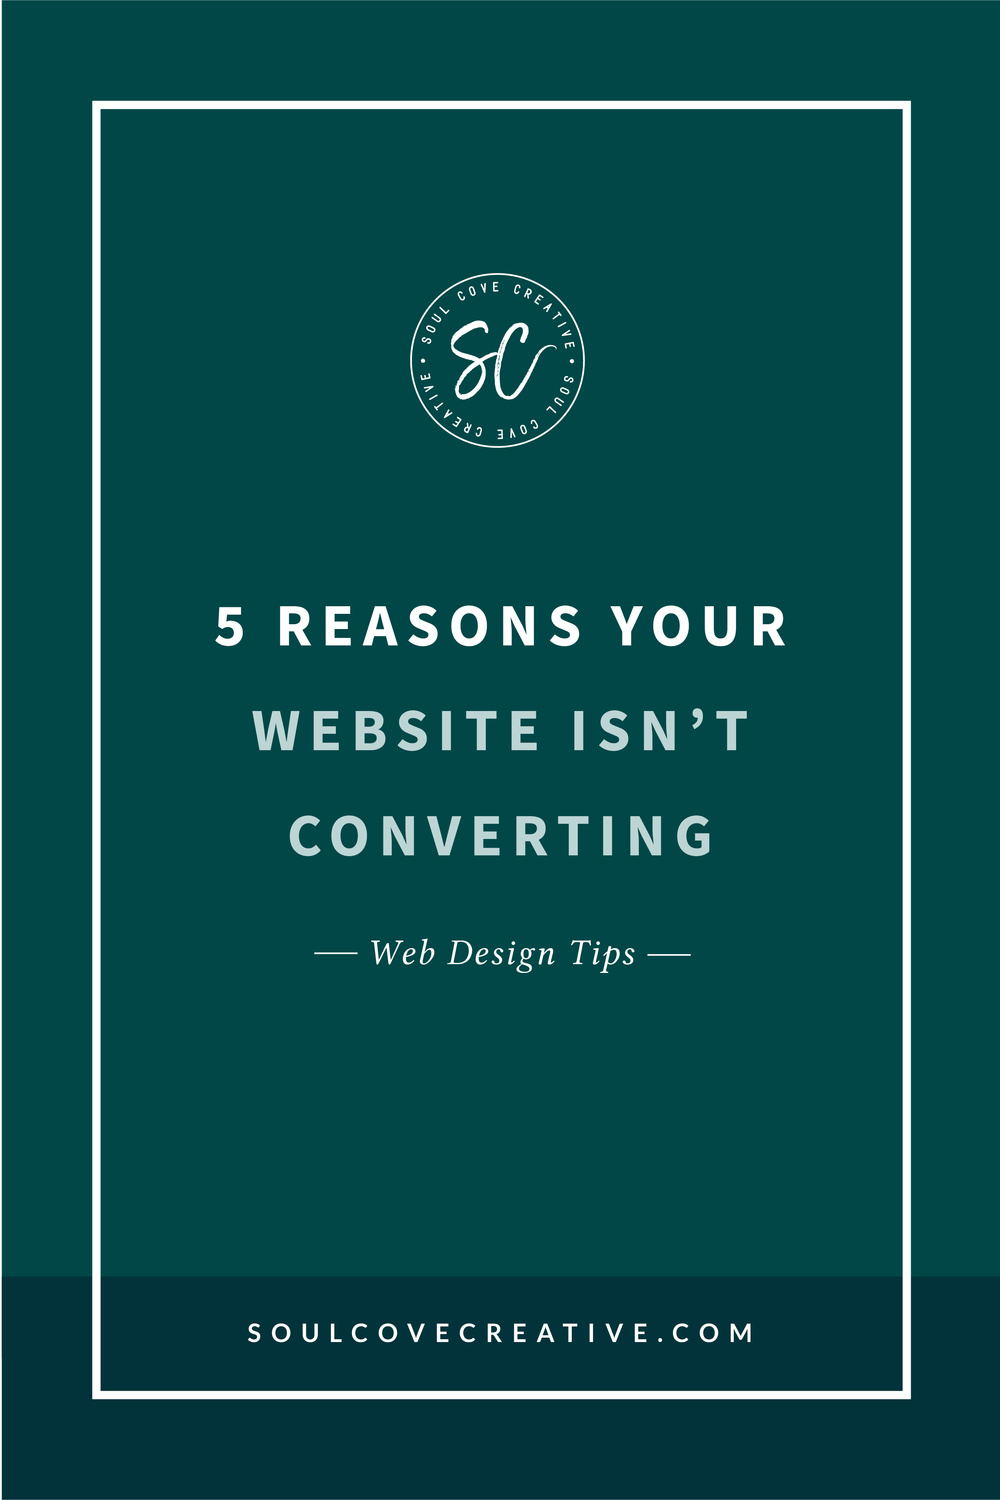 5 Reasons your Website Isn't Converting